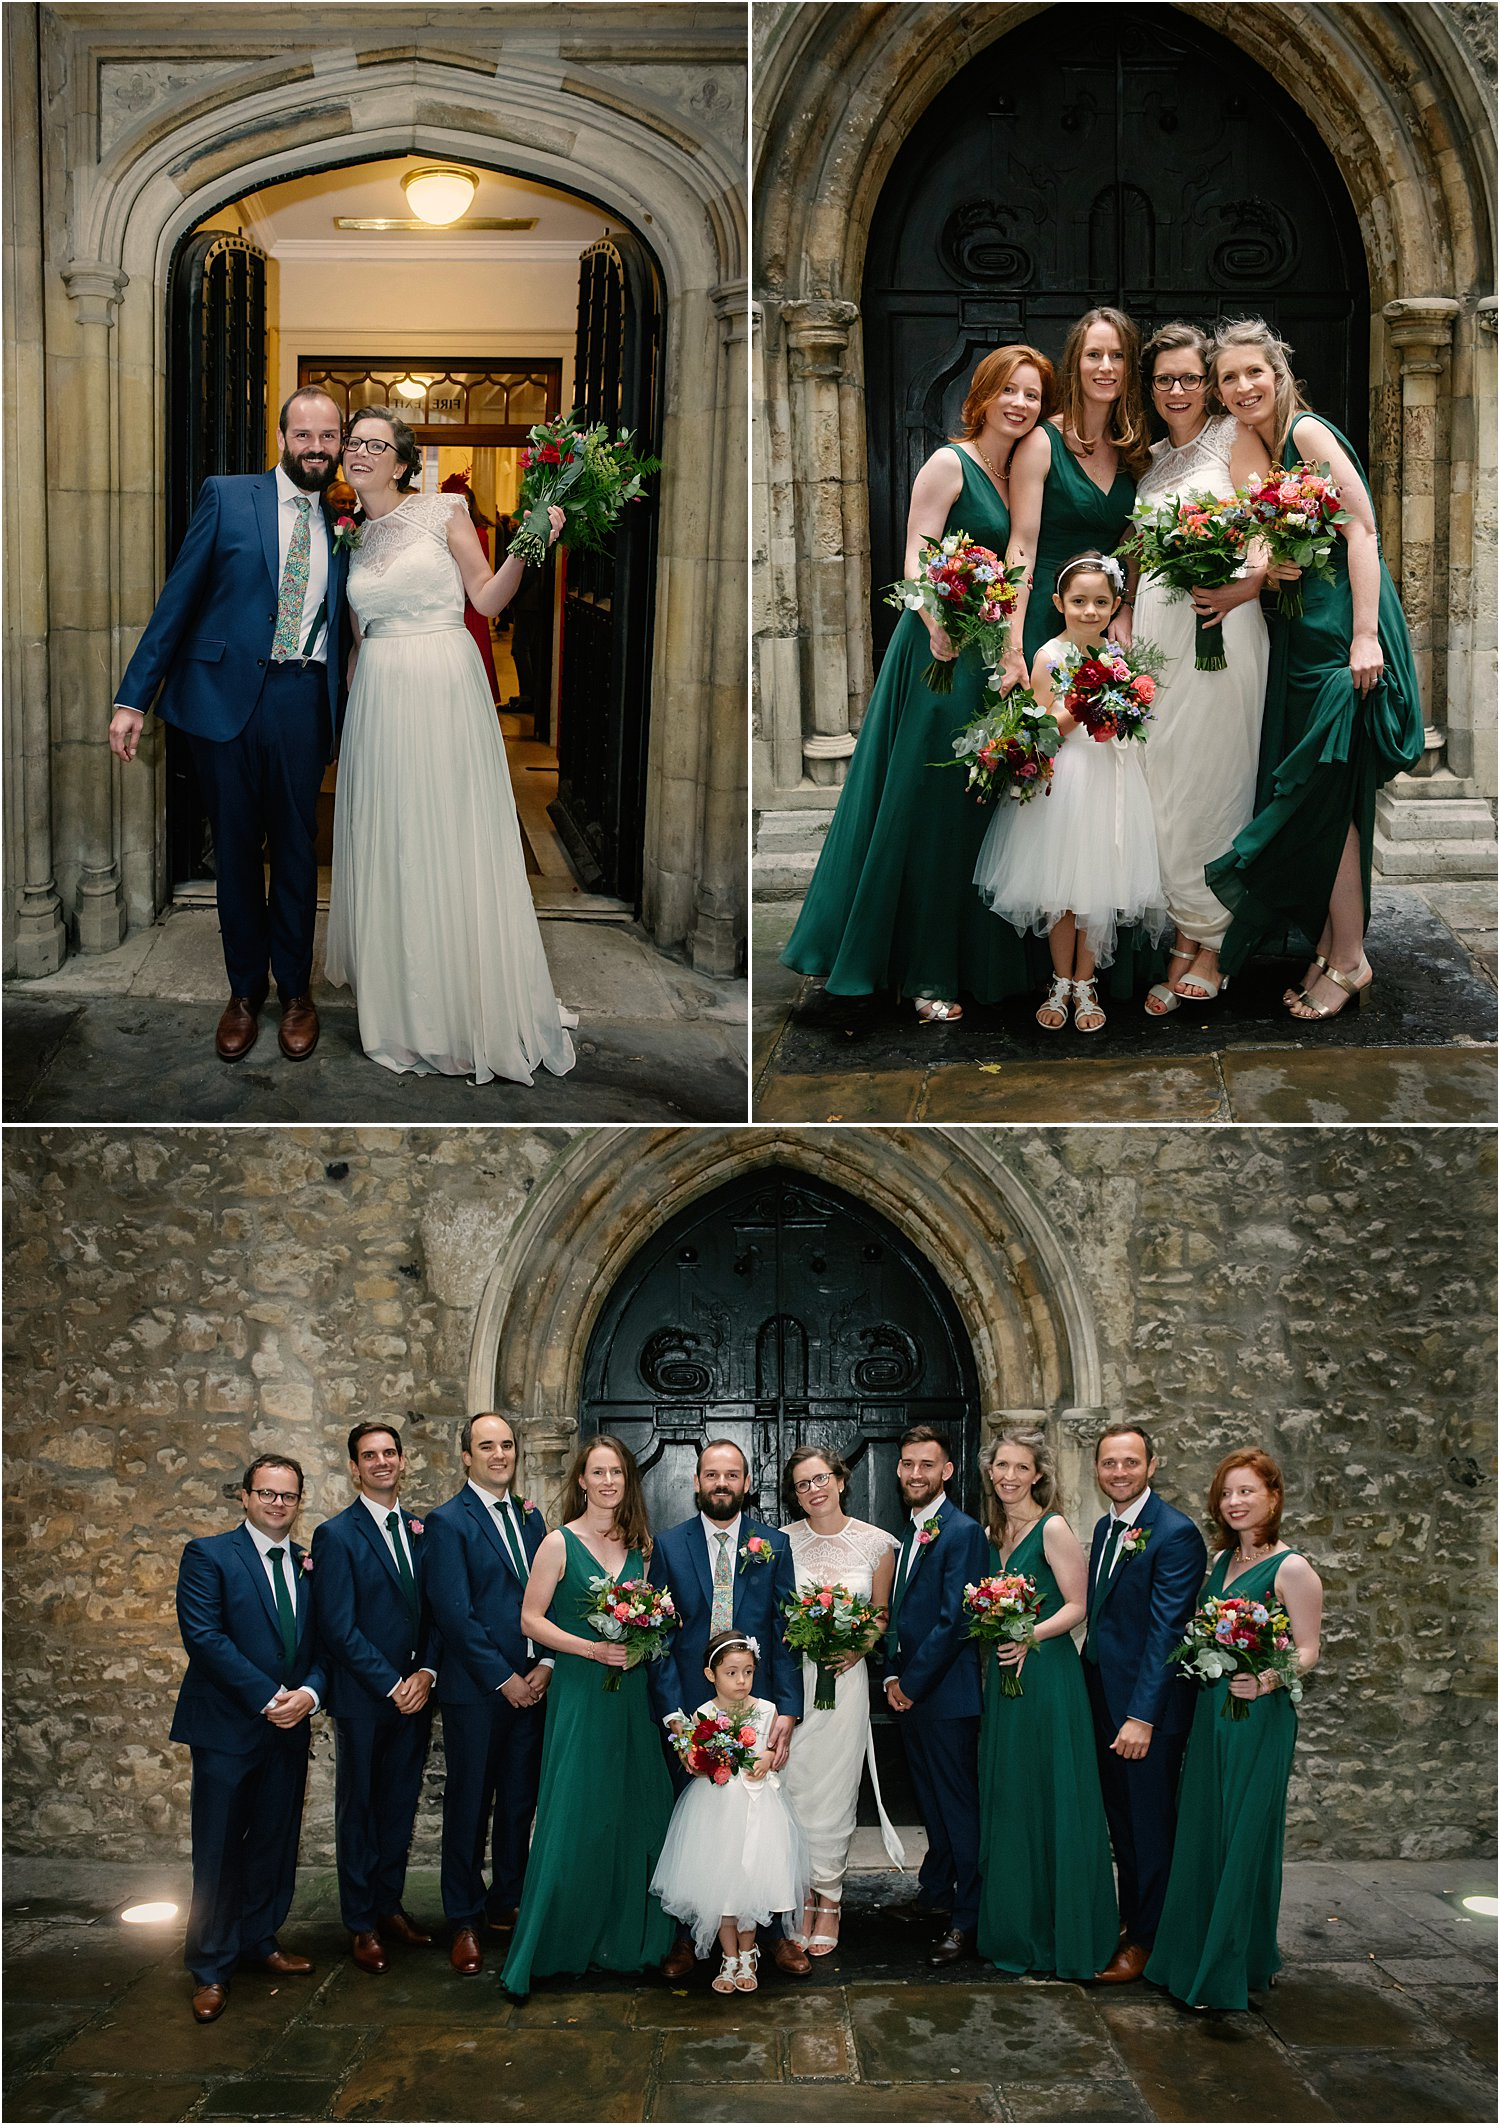 dark-green-red-orange-wedding-london-city-st-helens-the-wren-wild-wedding-flowers-lily-sawyer-photo